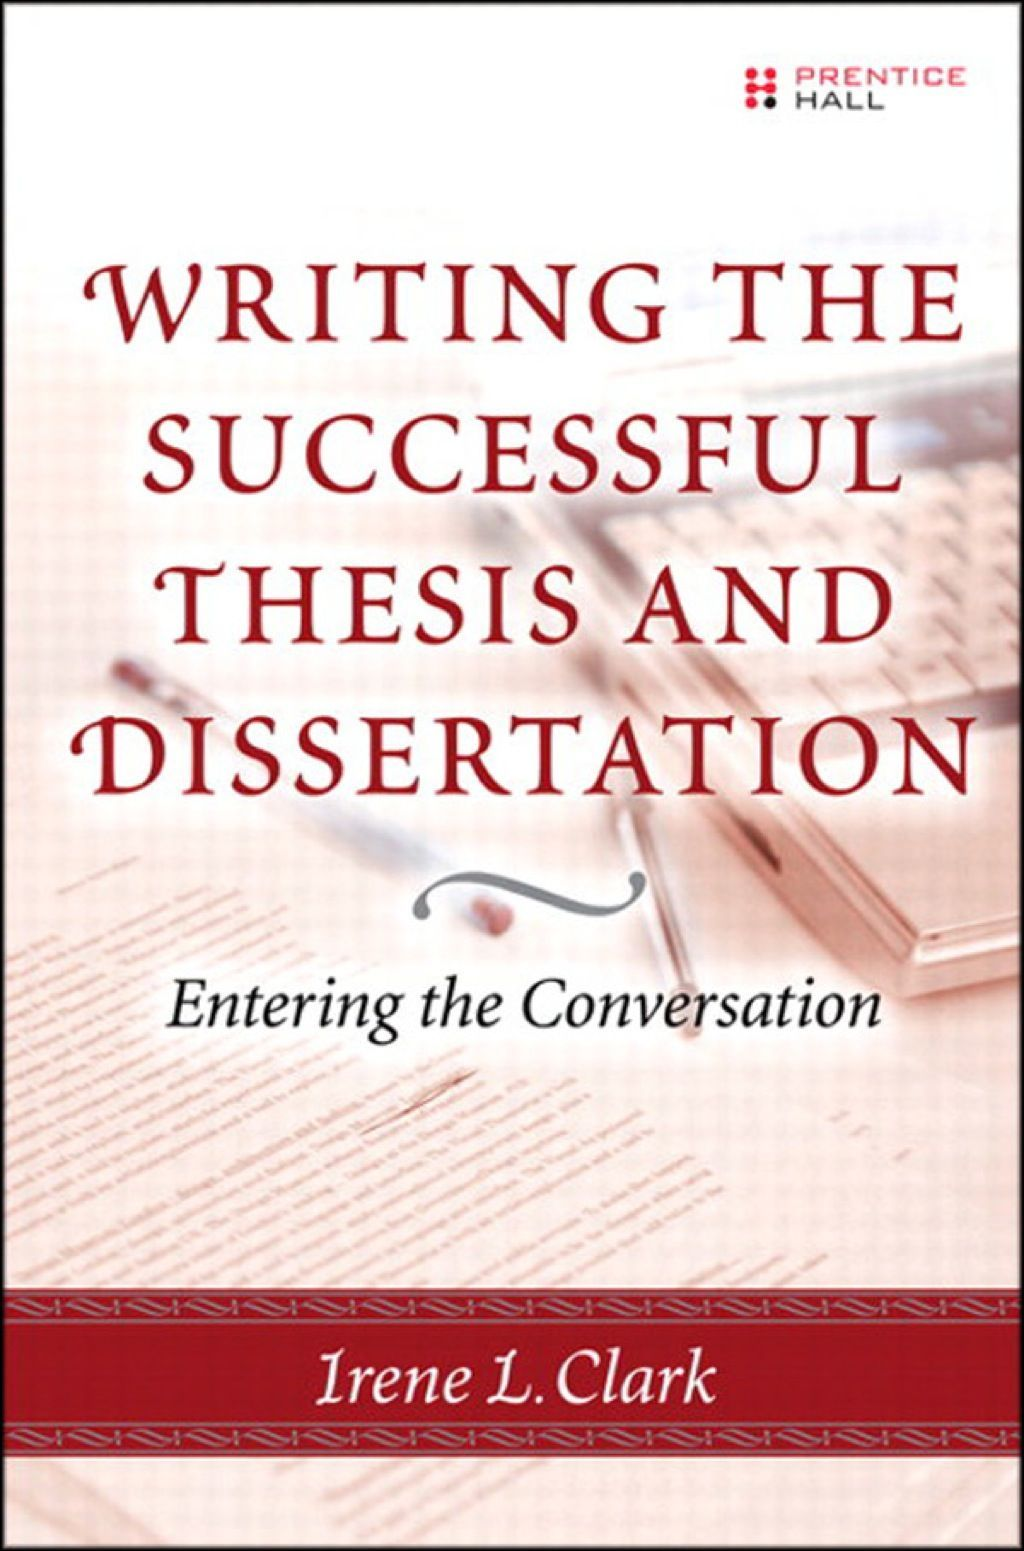 Writing The Successful Thesi And Dissertation Ebook Online These Dissertations